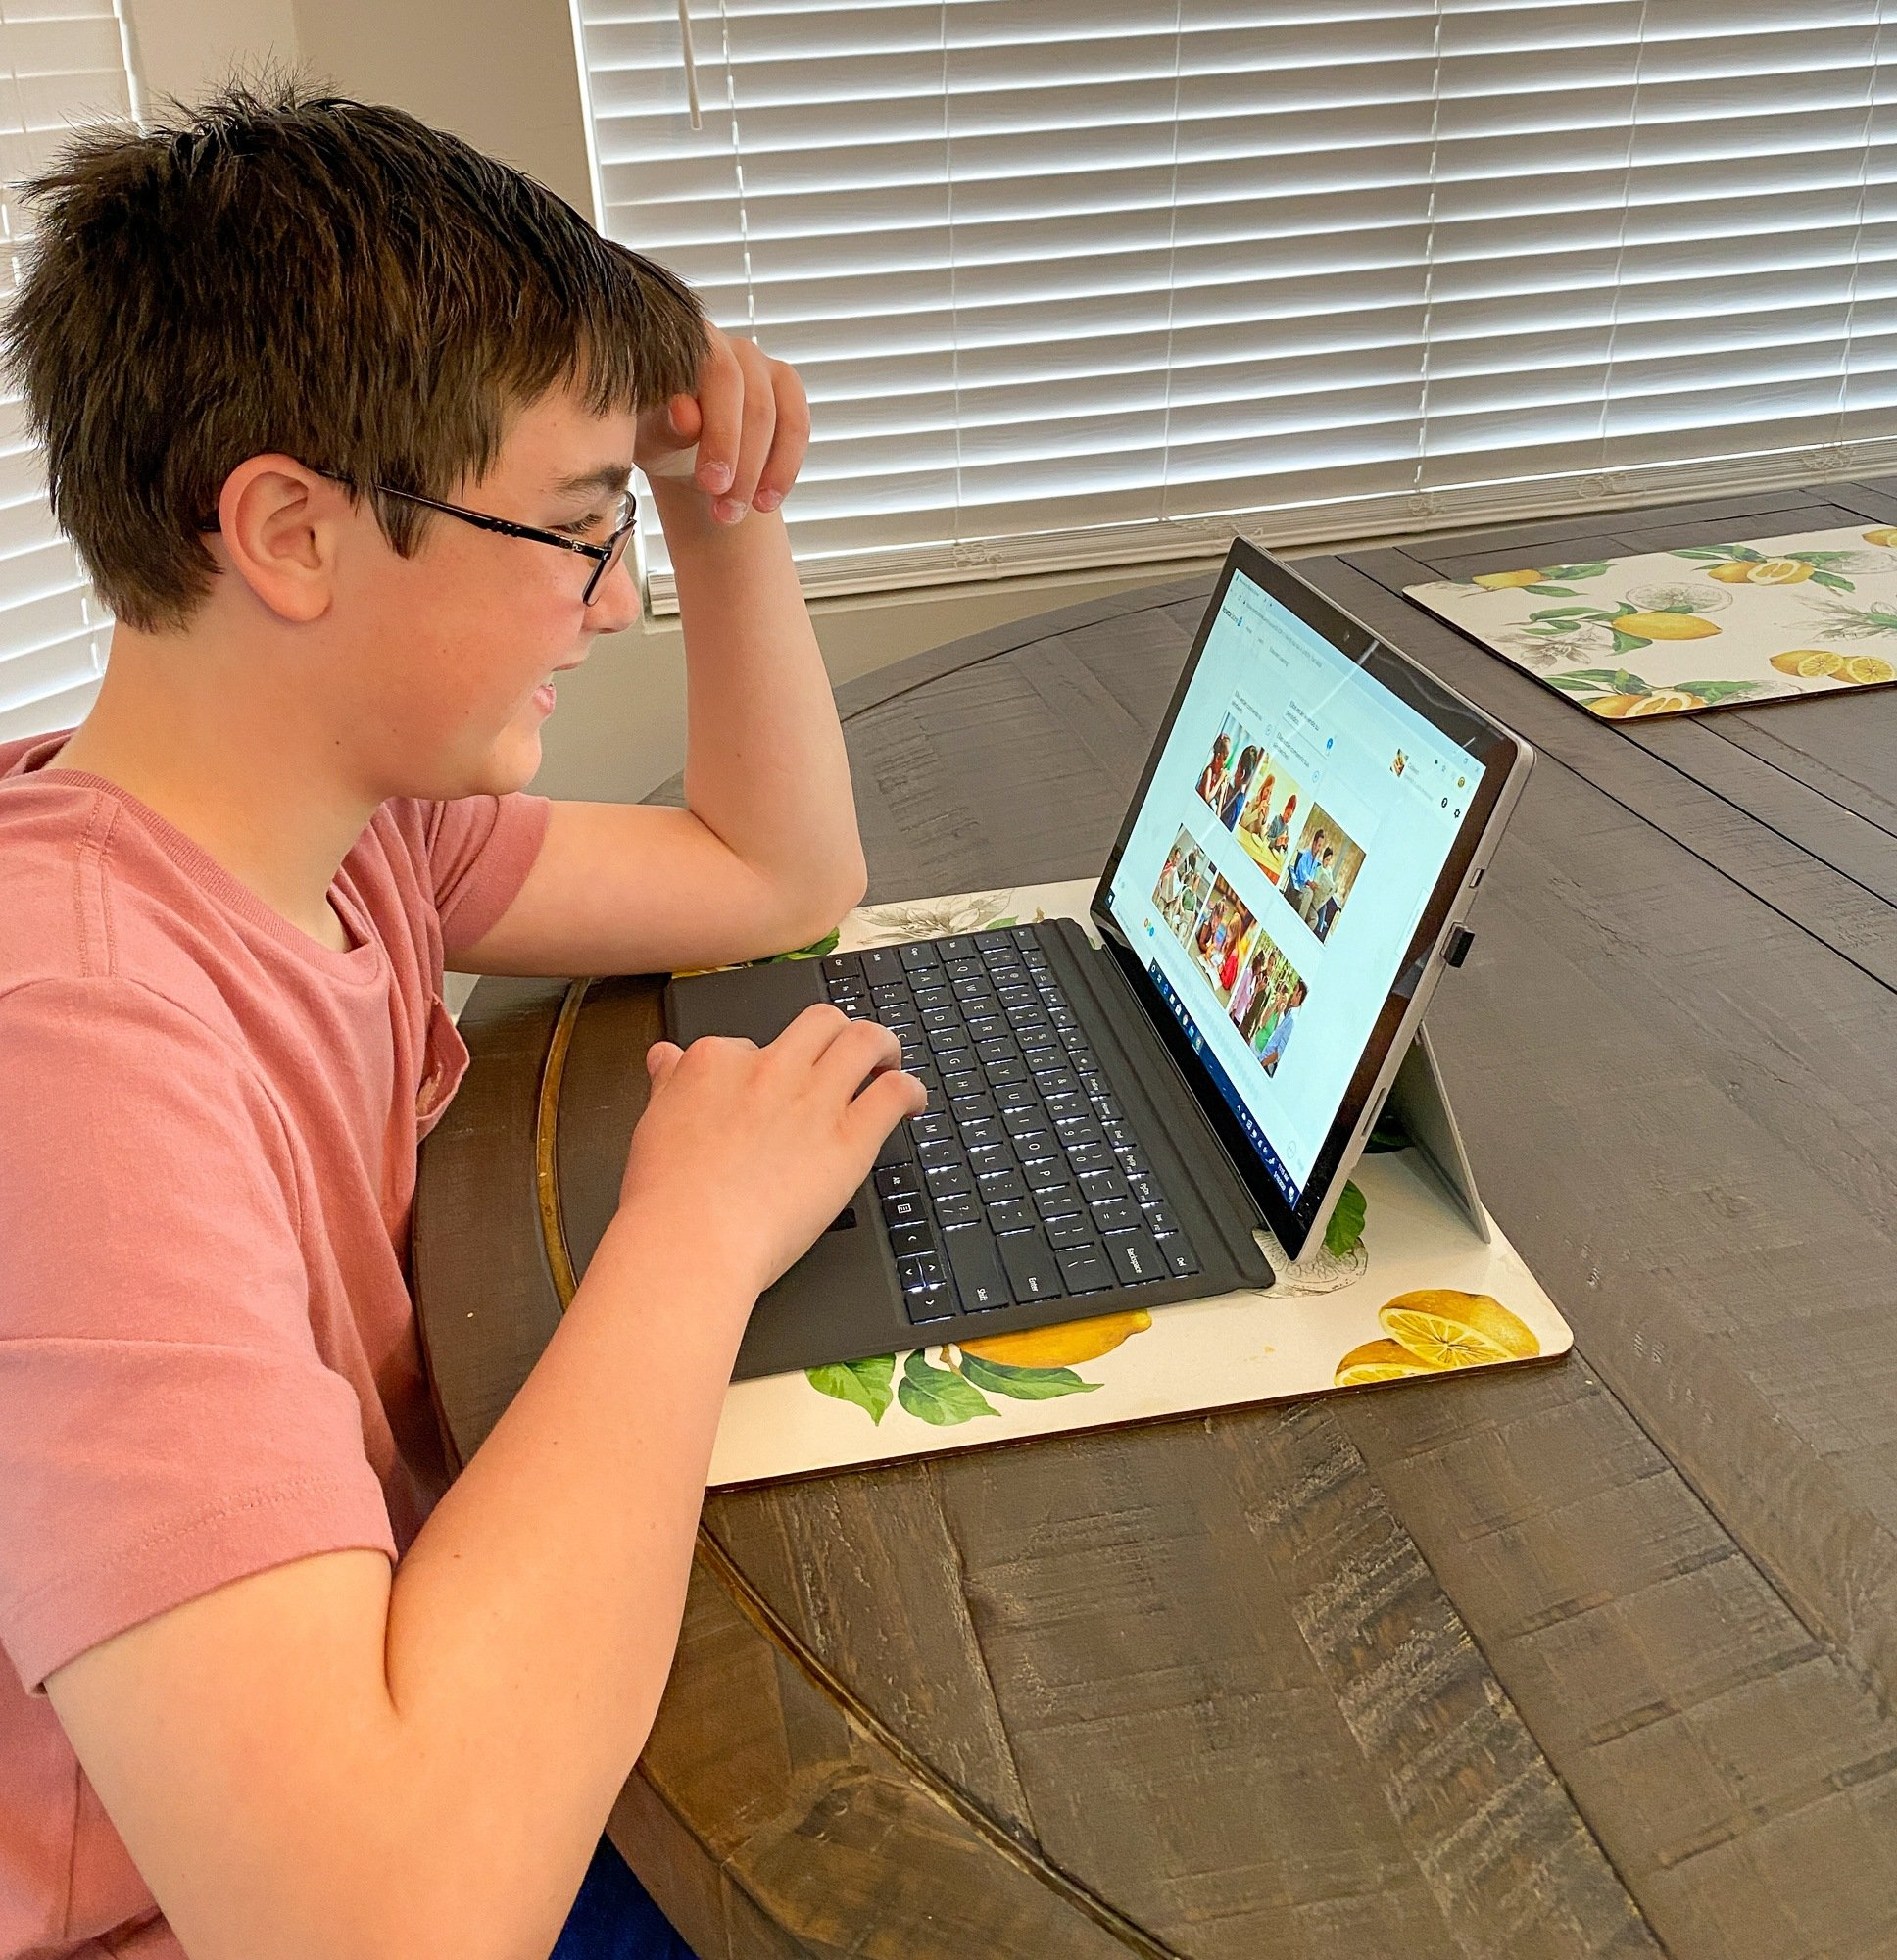 tween practicing his Spanish skills at home with Rosetta Stone